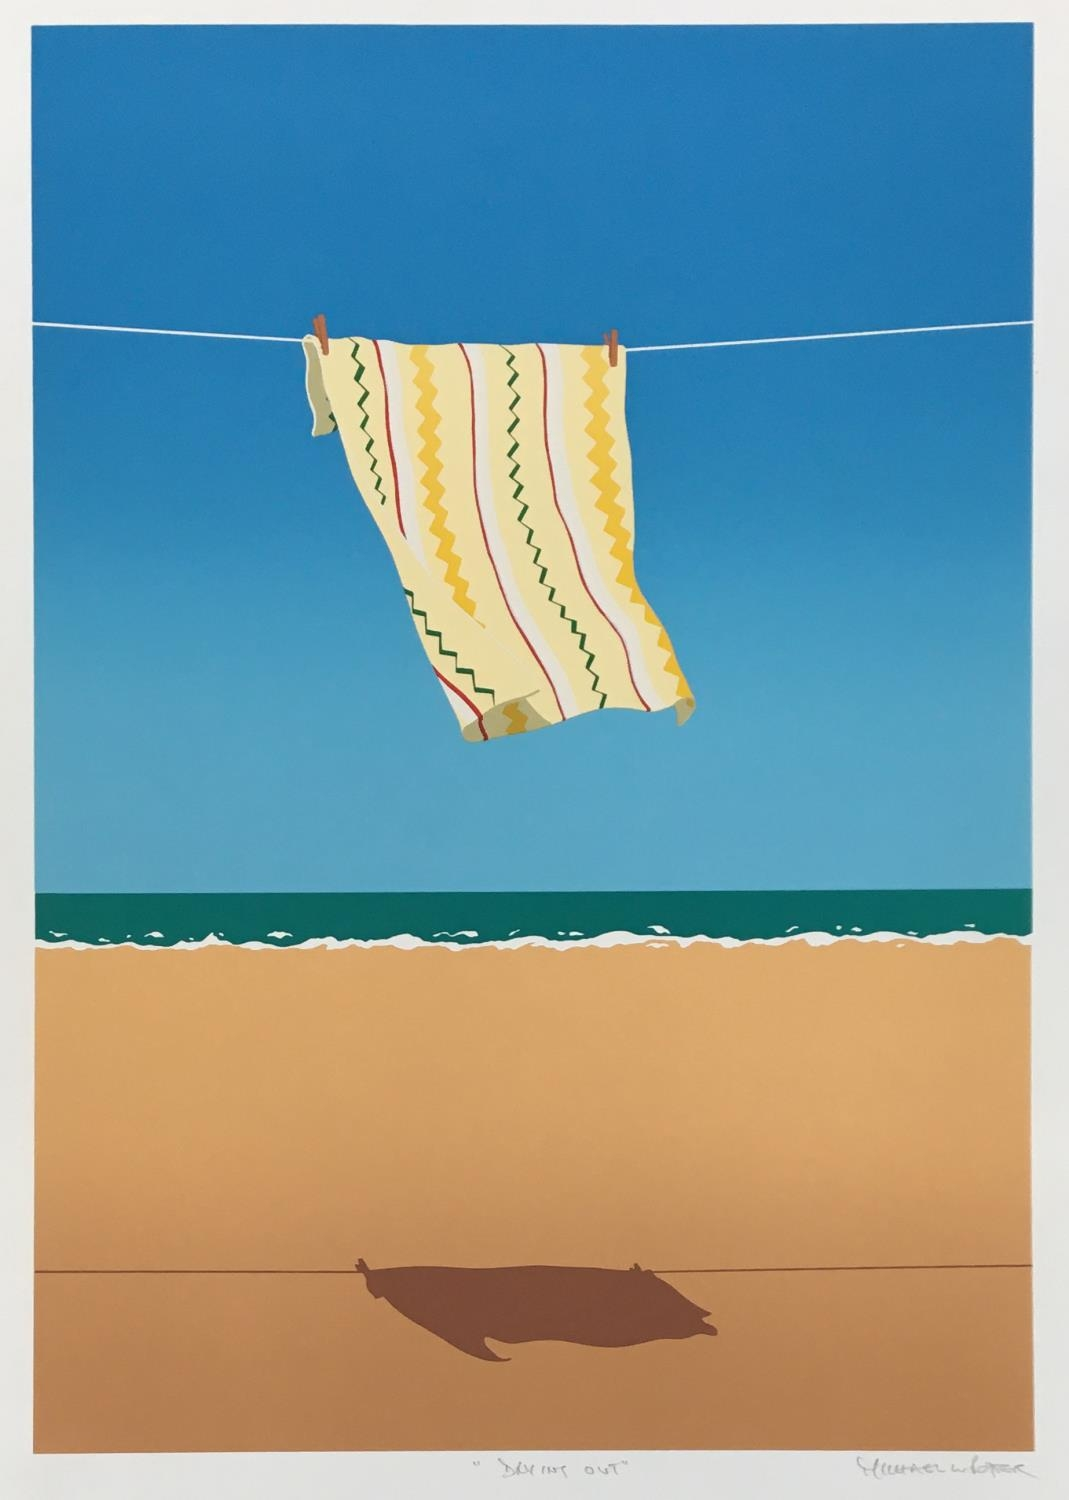 Michael Potter (British, b.1951) 'Drying Out', screenprint, unframed, signed and titled in pencil, - Image 2 of 2